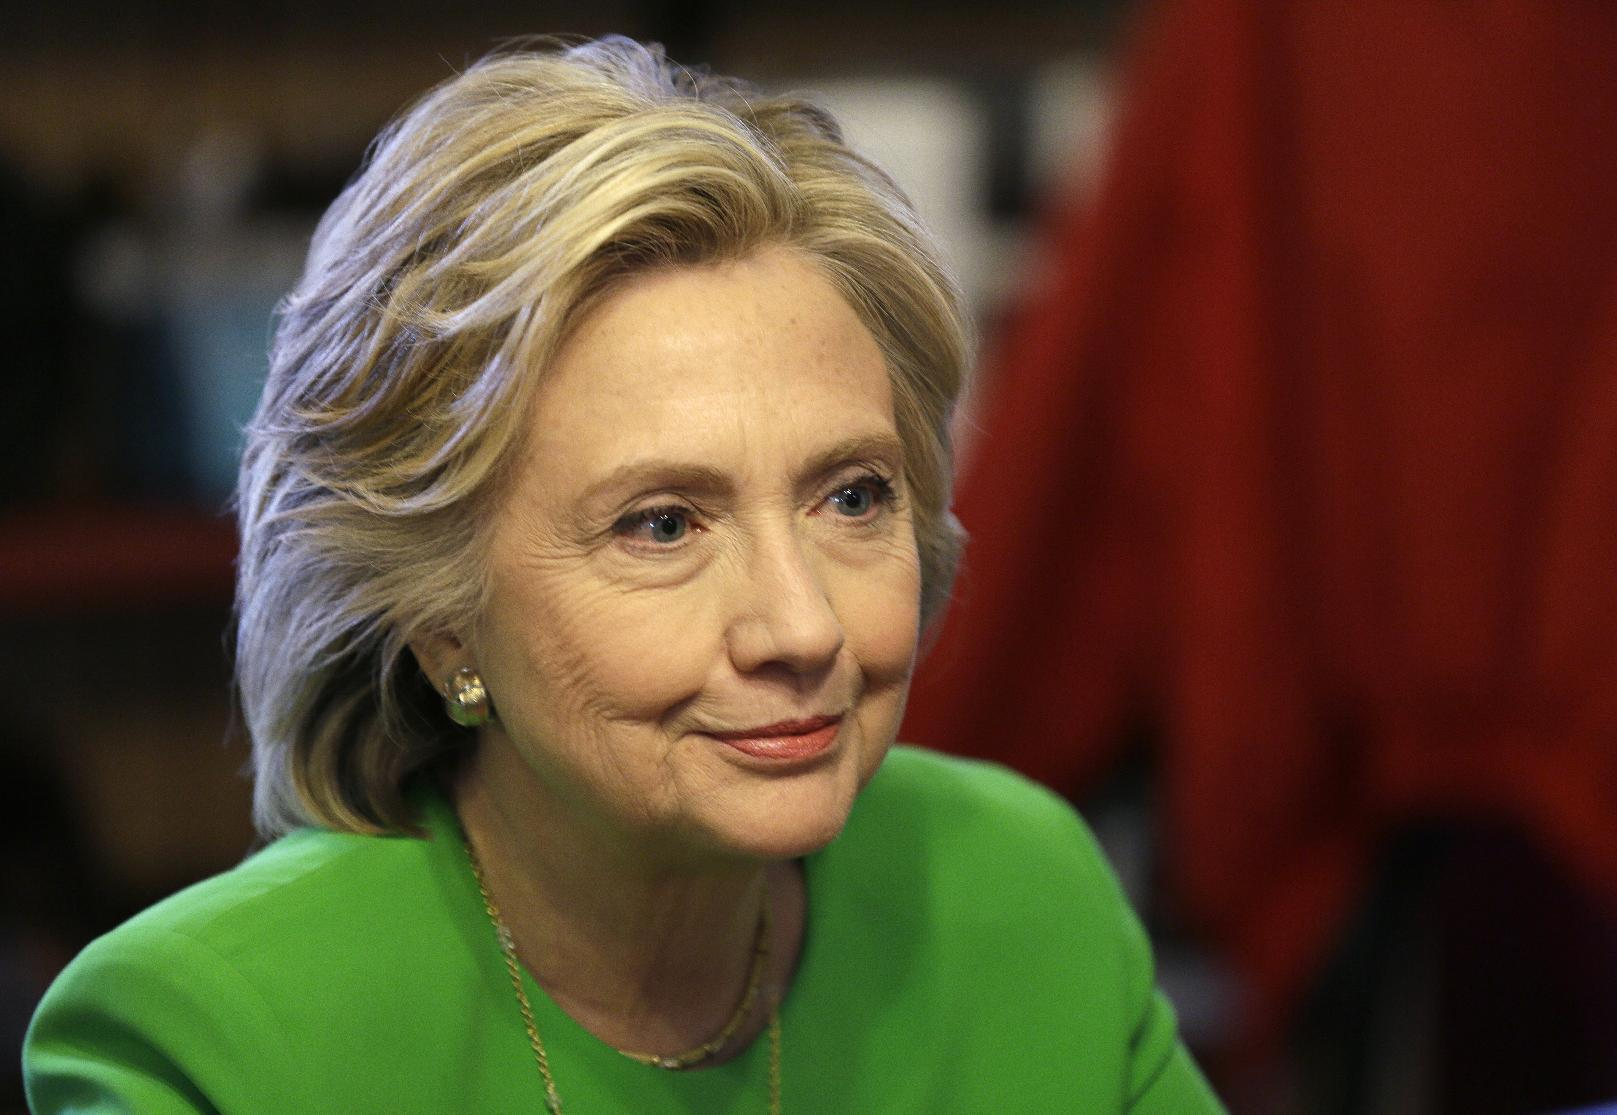 Clinton charity to allow 6 countries to donate, not others